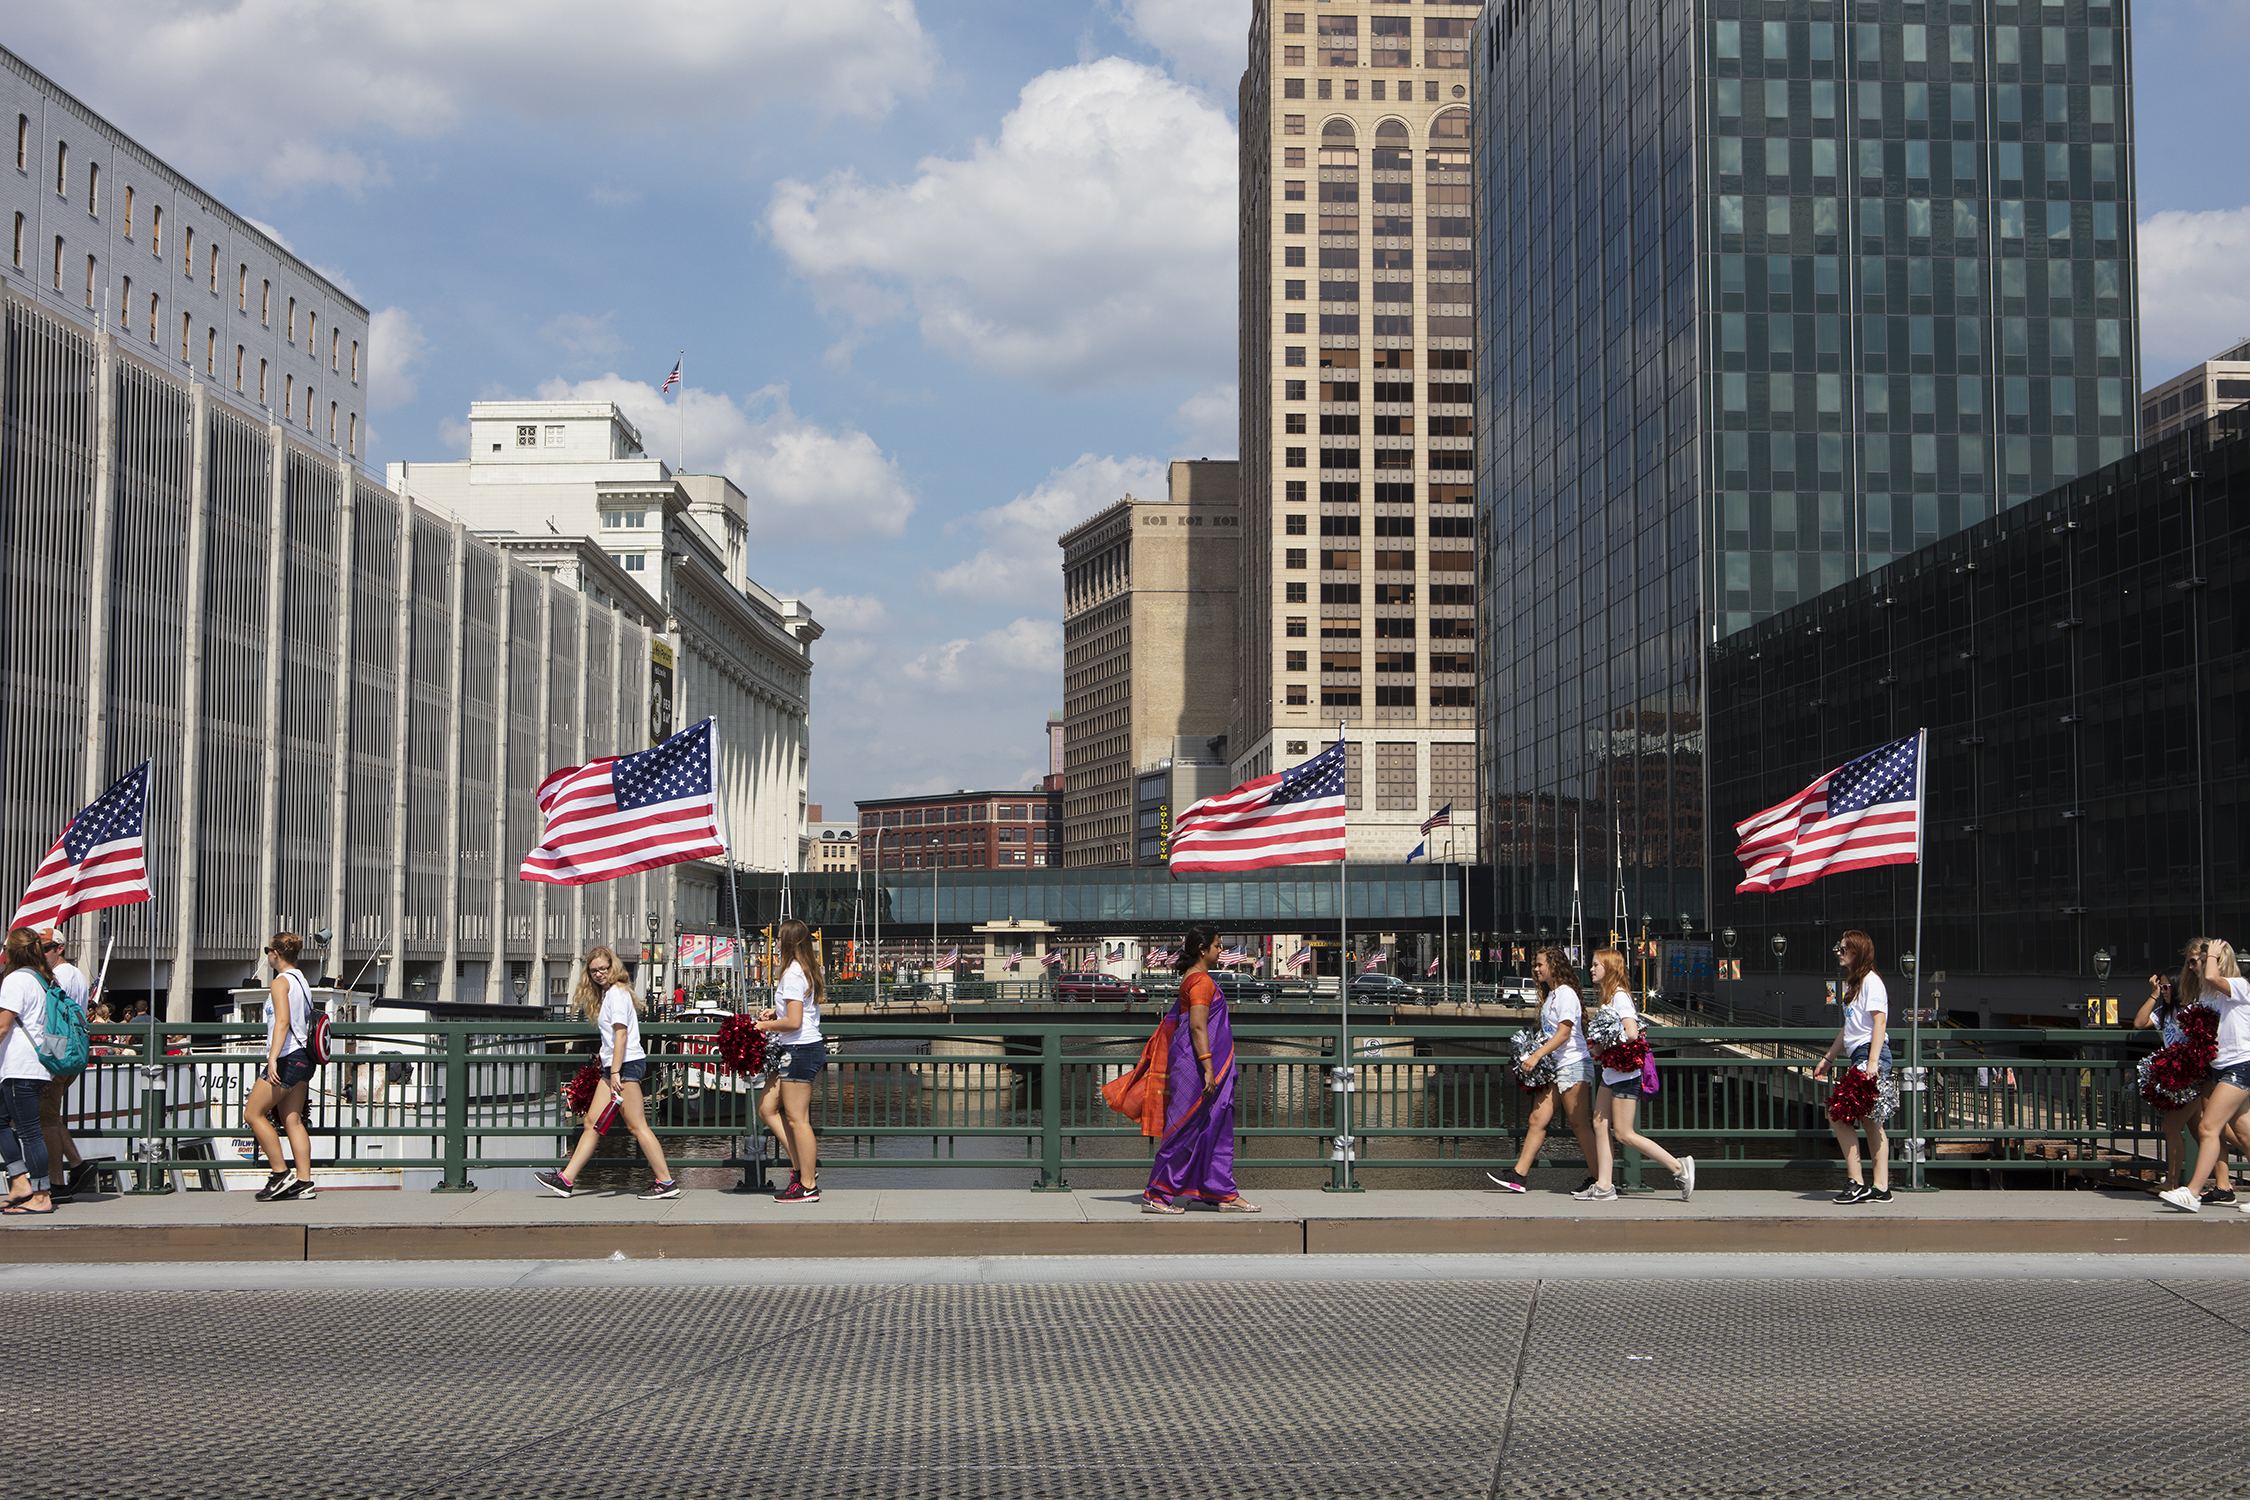 170916_flags_downtown_063.jpg